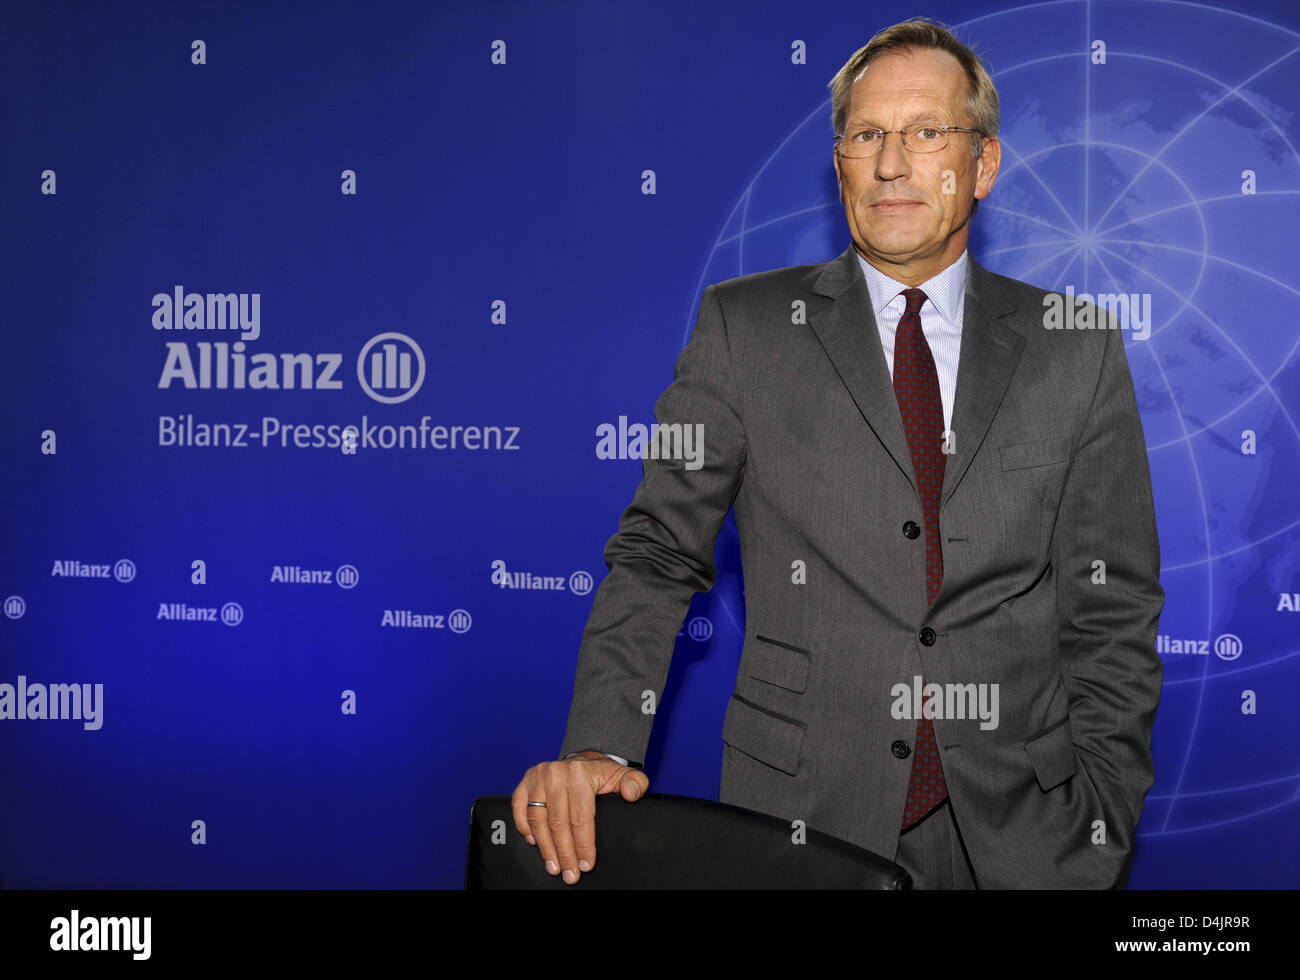 CEO of Allianz, Michael Diekmann, is pictured prior to the balance press conference in Munich, Germany, 26 February 2009. After selling subsidiary ?Dresdner Bank? and also due to the financial crisis, Europe?s largest insurer has suffered a lost of 2.4 billion euro during the last year, as announced by Allianz SE in Munich. Photo: PETER KNEFFEL Stock Photo